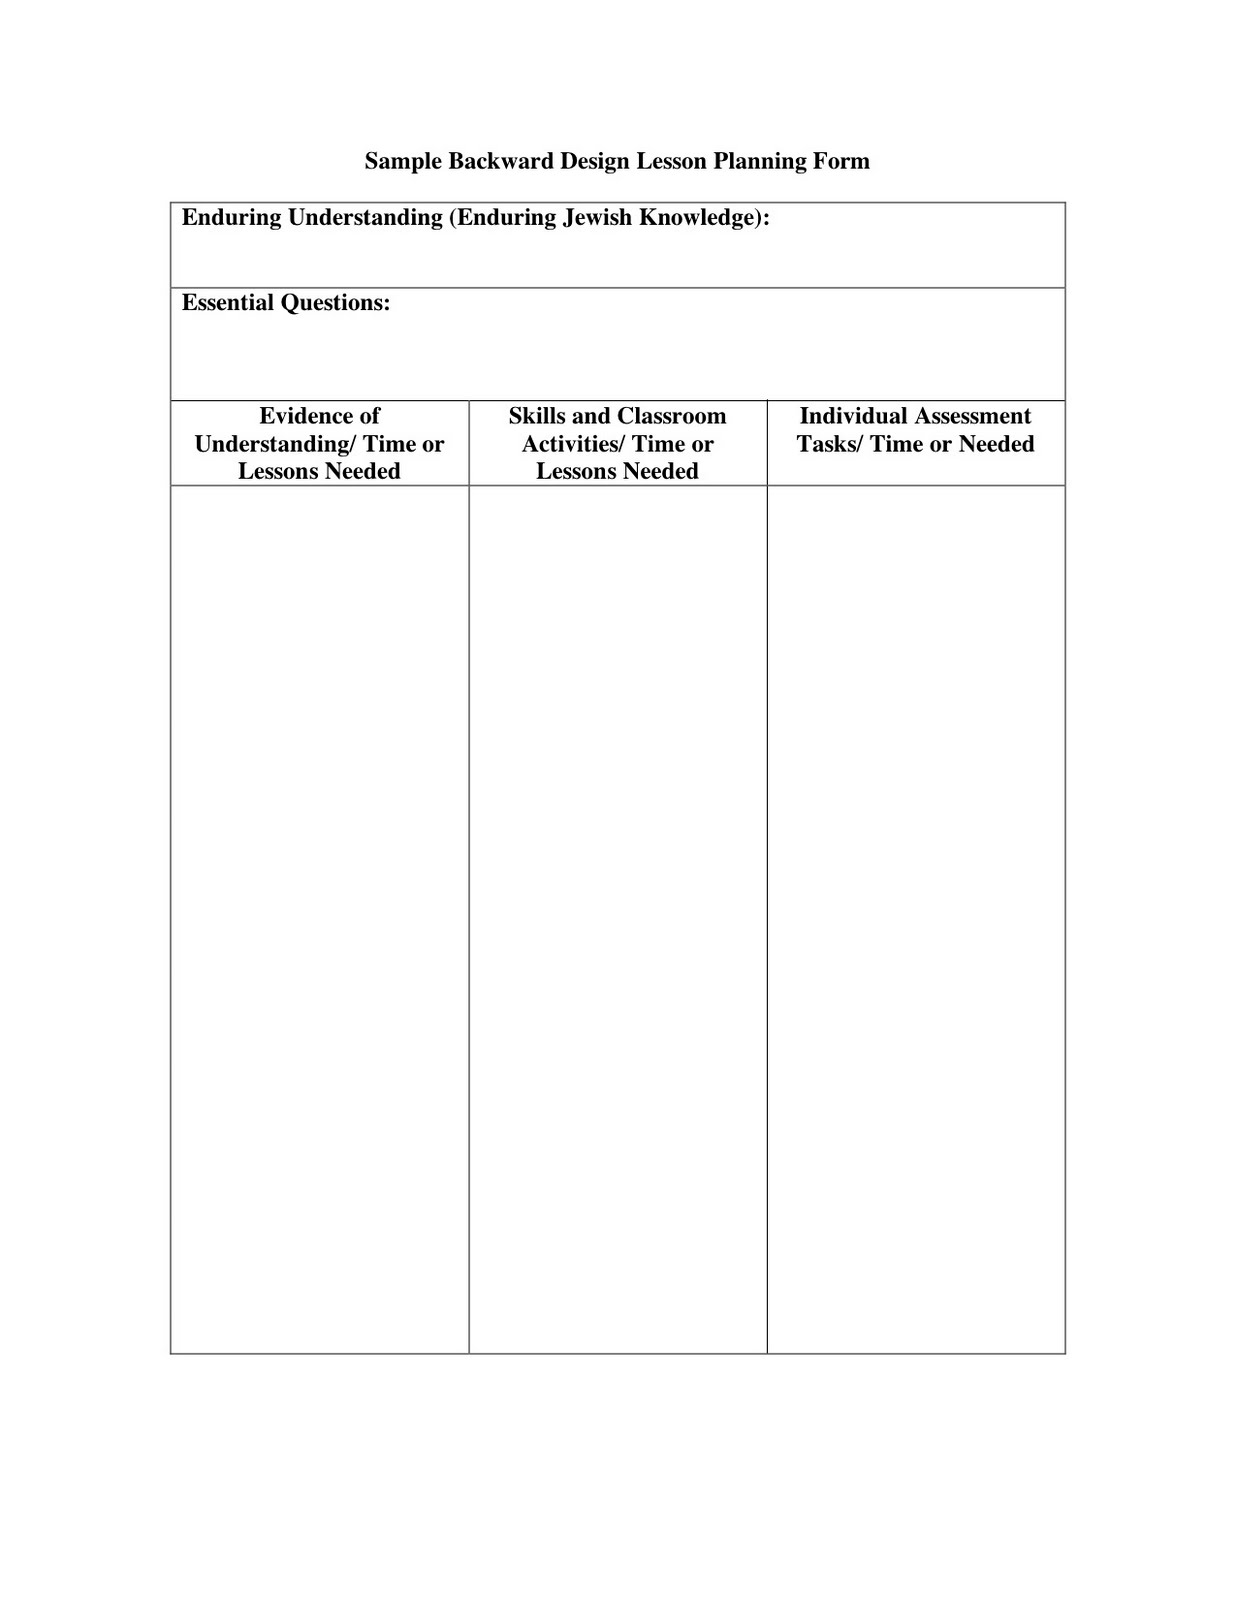 sample lesson plan using differentiated instruction